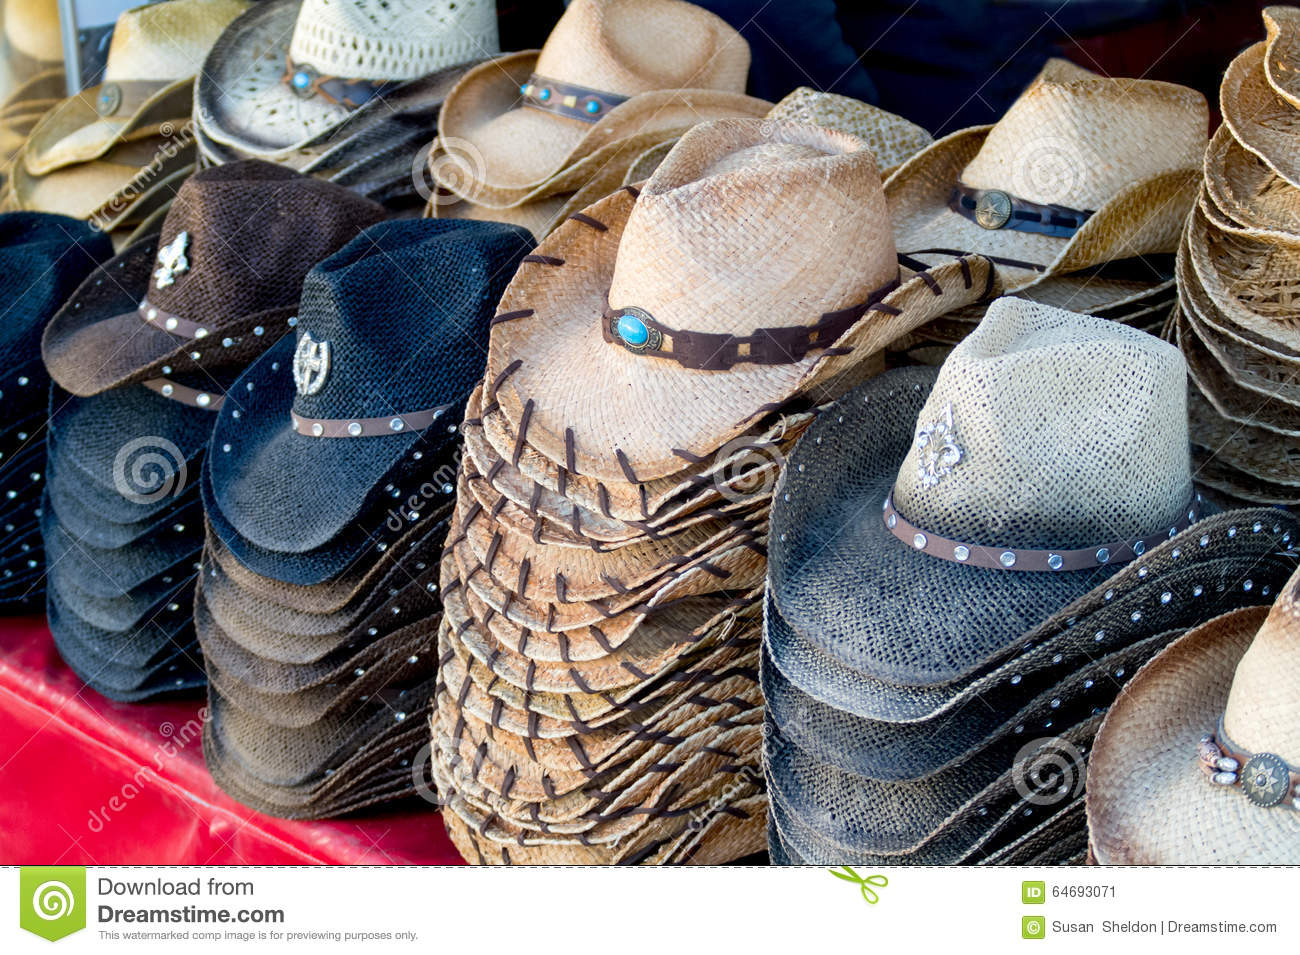 1f1808fe4174c1 Stacks of fun cowboy hats stock image. Image of straw - 64693071